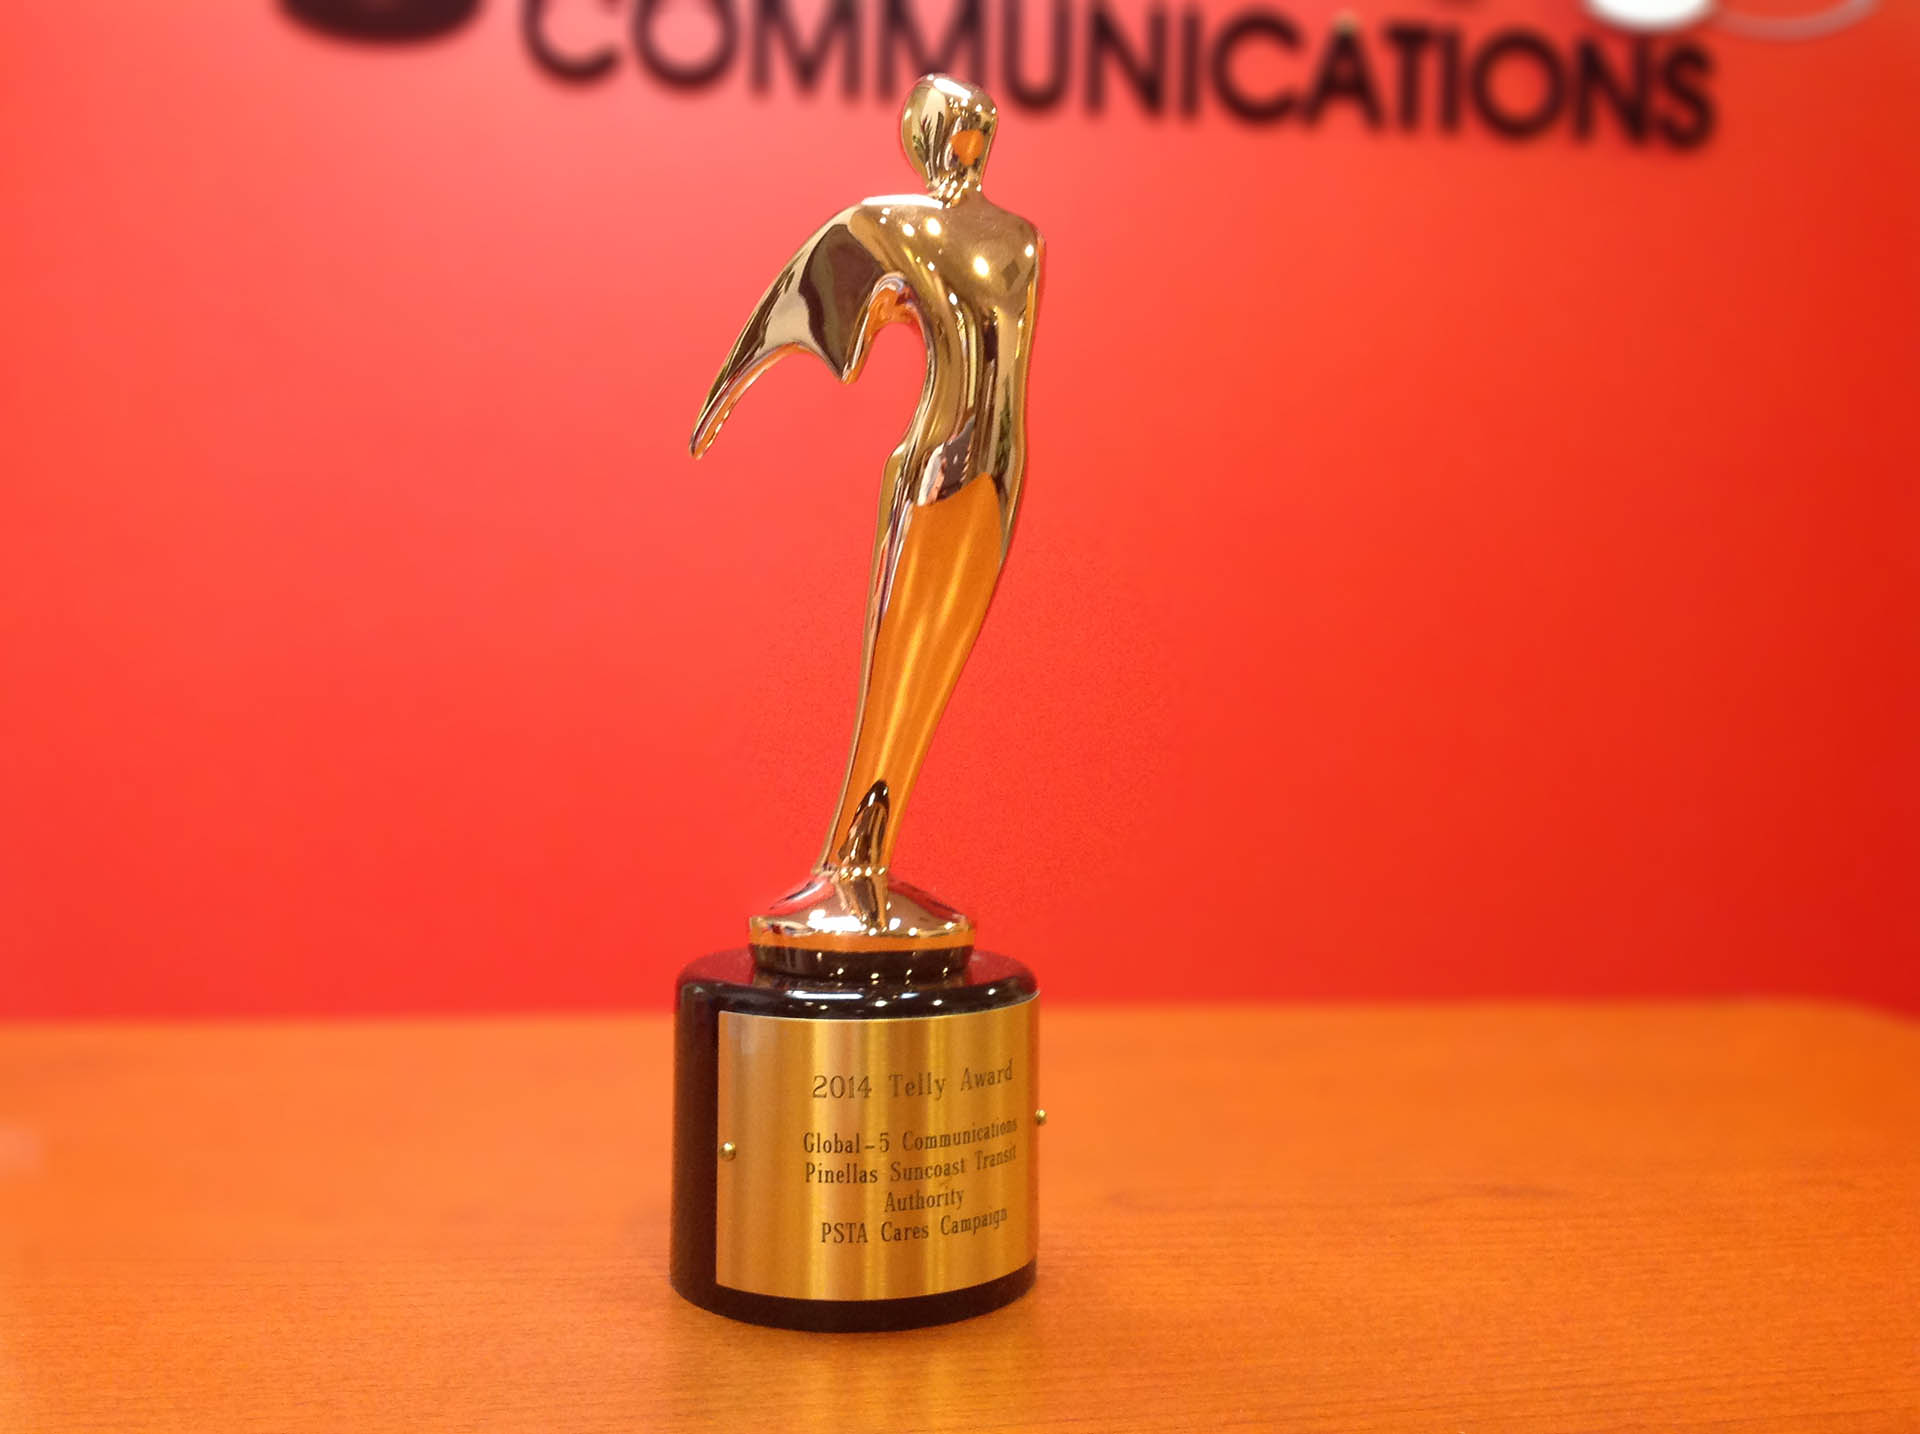 Global-5 Communications Named a Winner in the 35th Annual Telly Awards